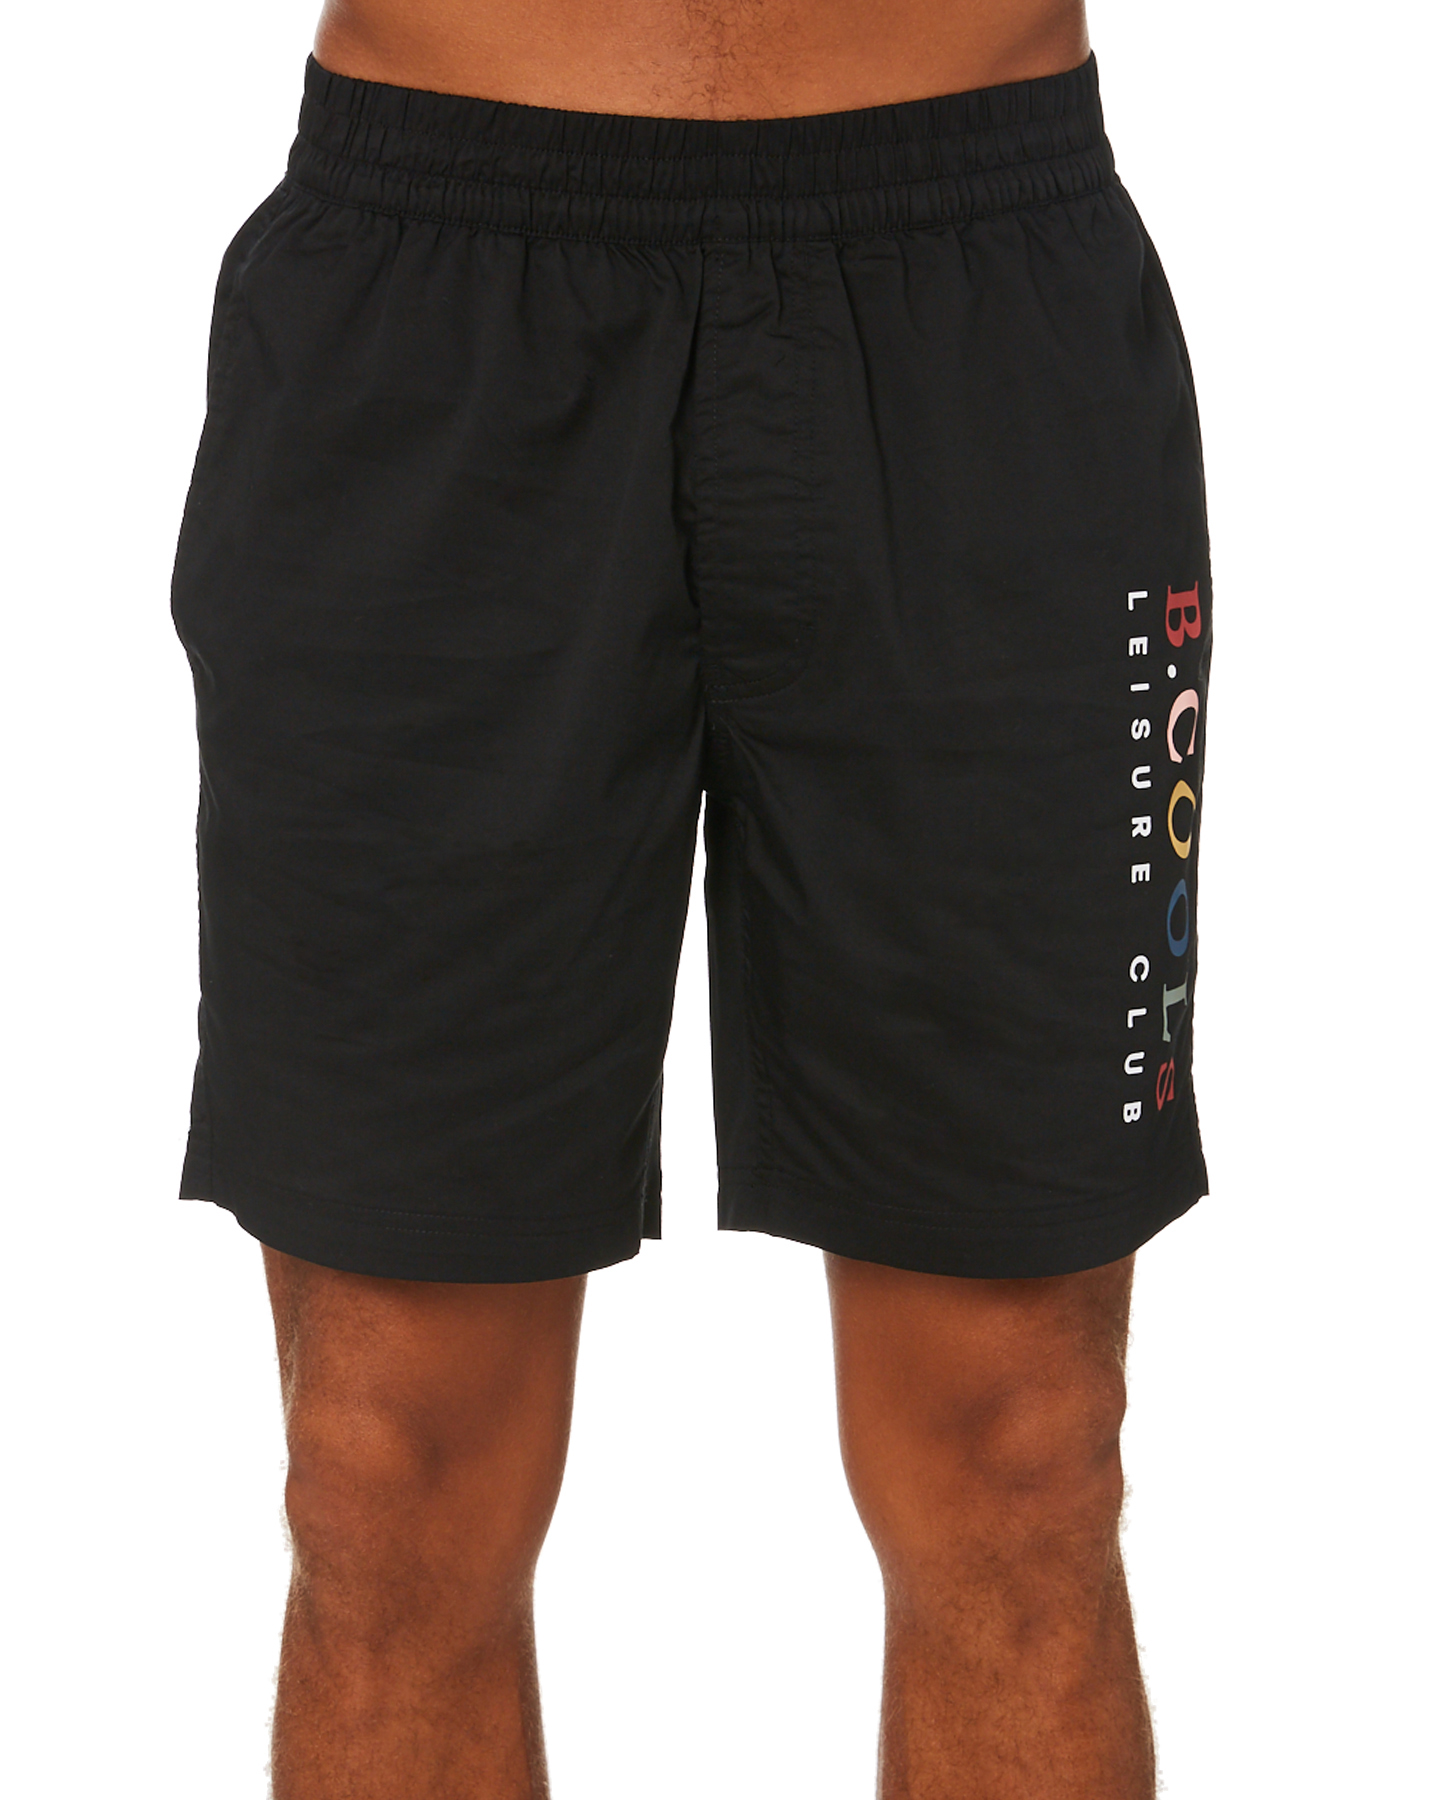 Barney Cools Leisure Club Mens Short Black